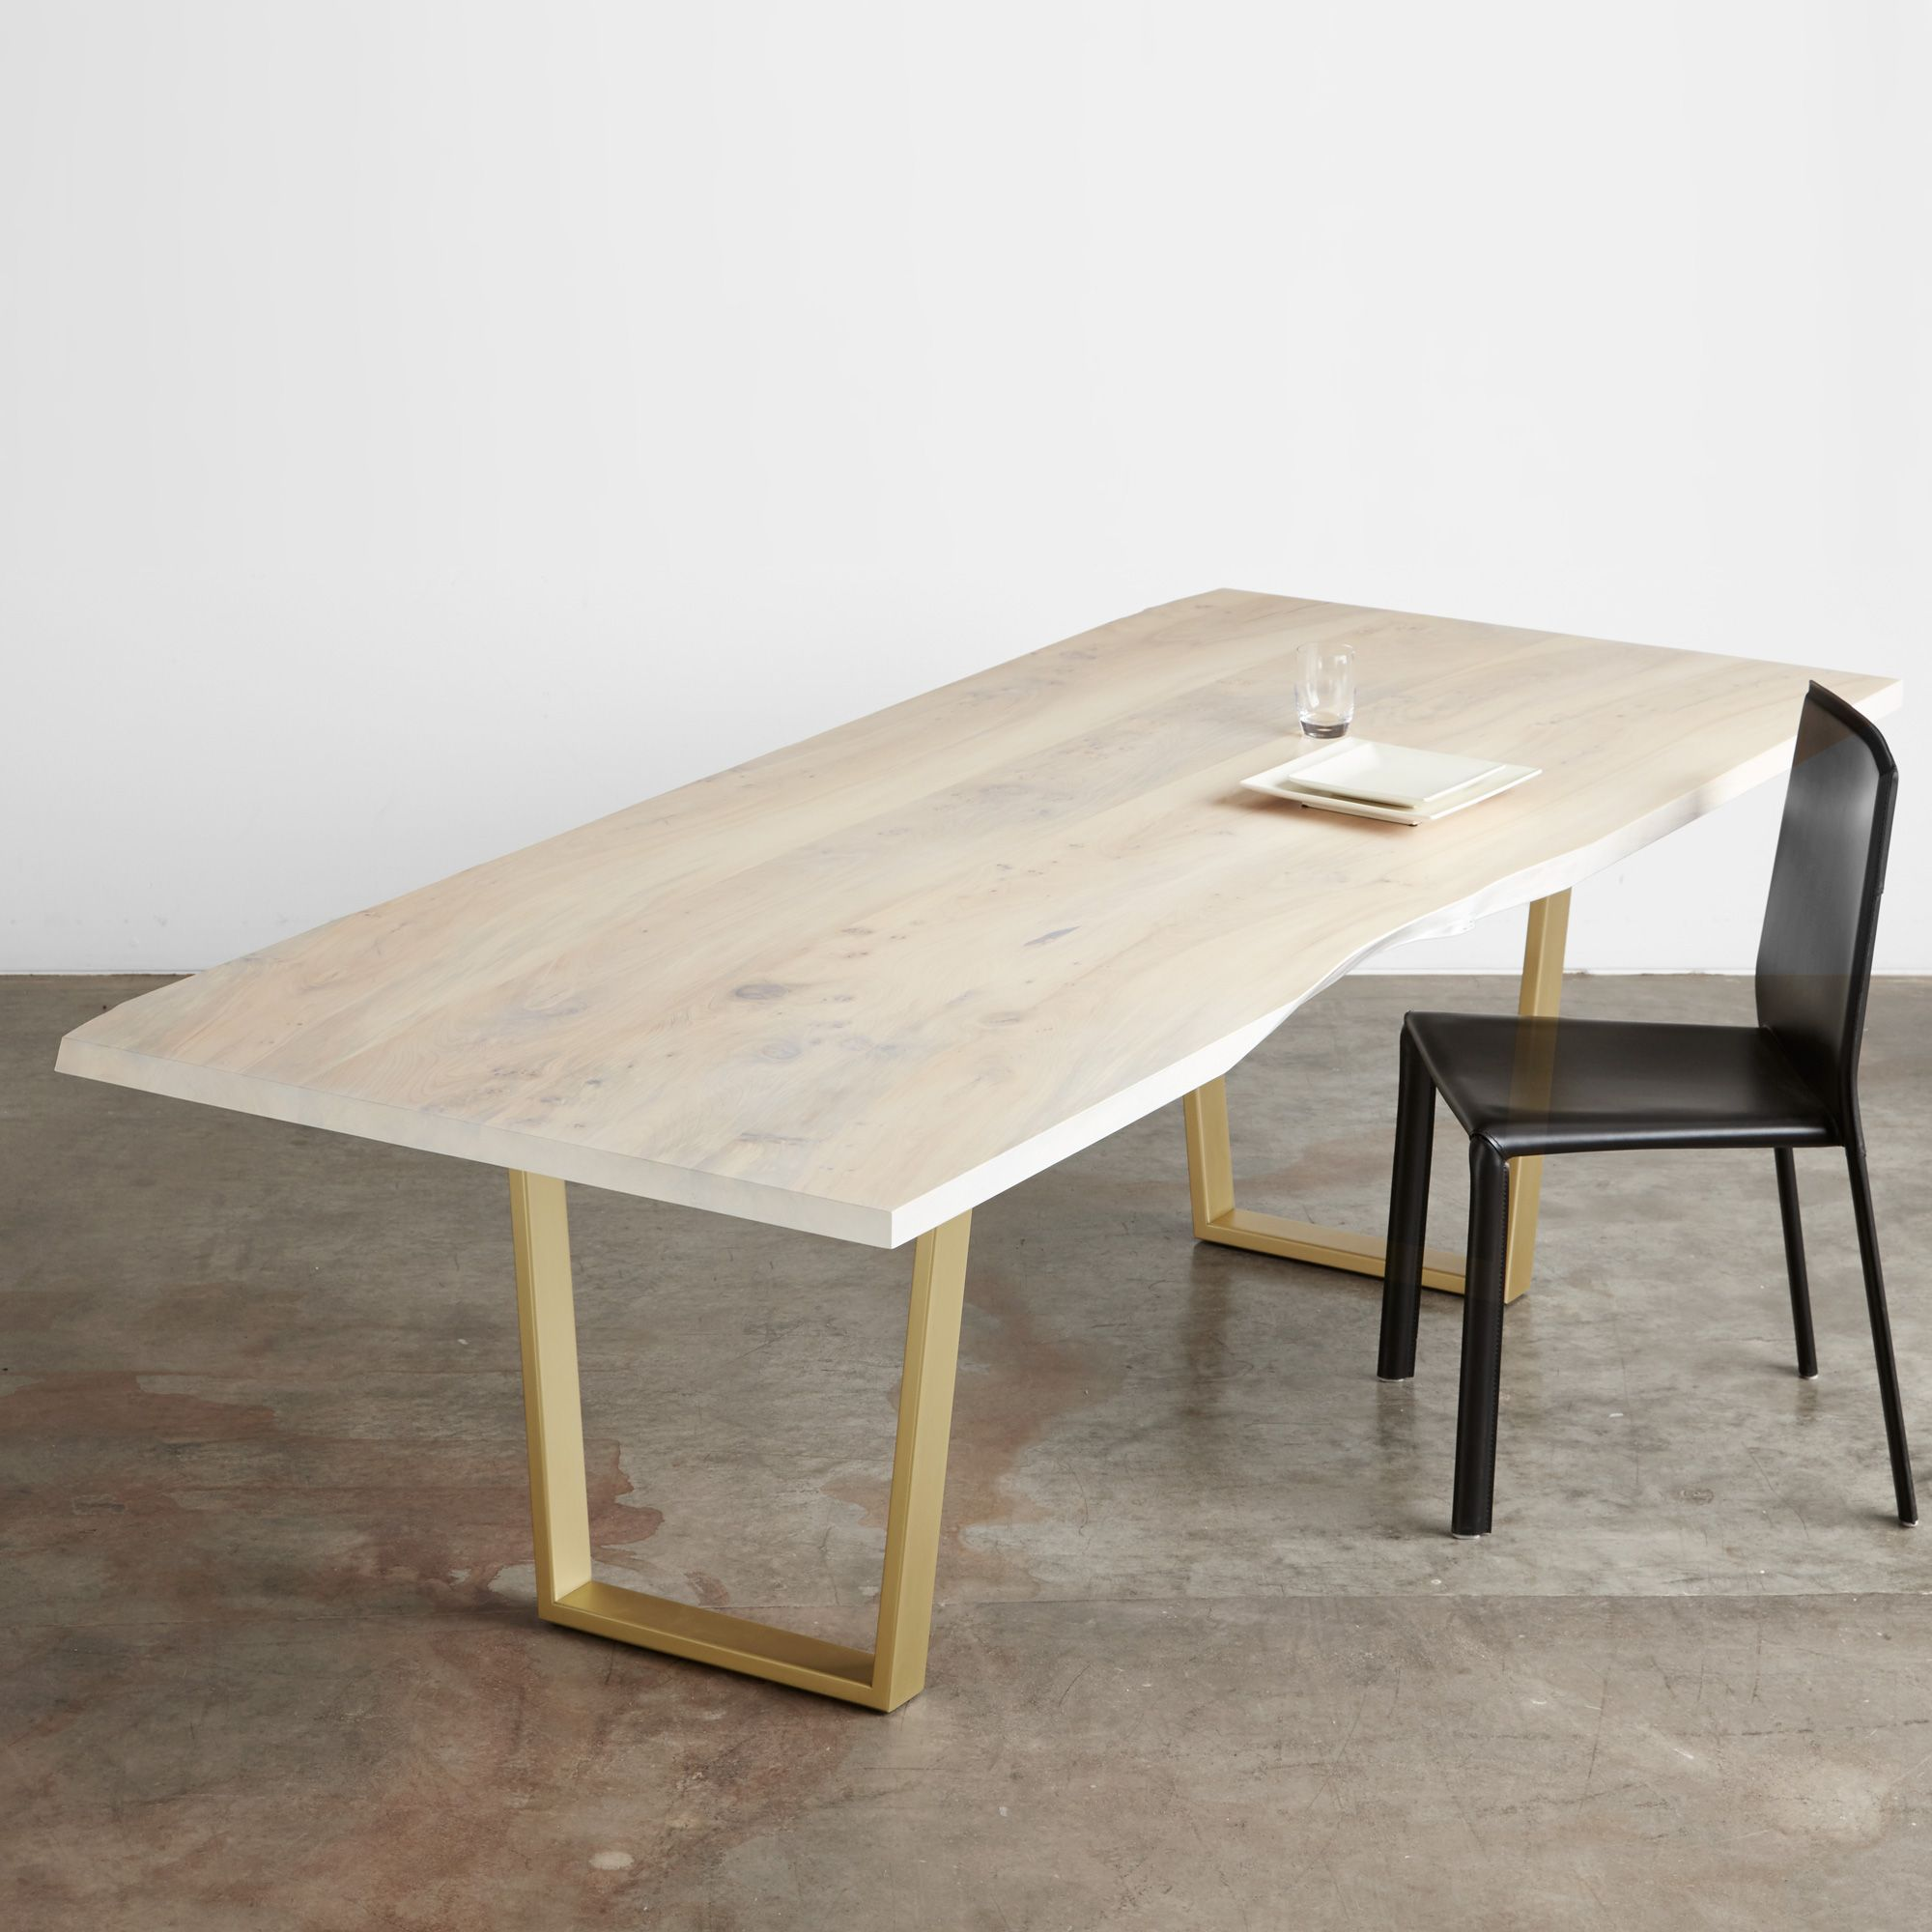 White washed salvaged American elm table with satin brass sled